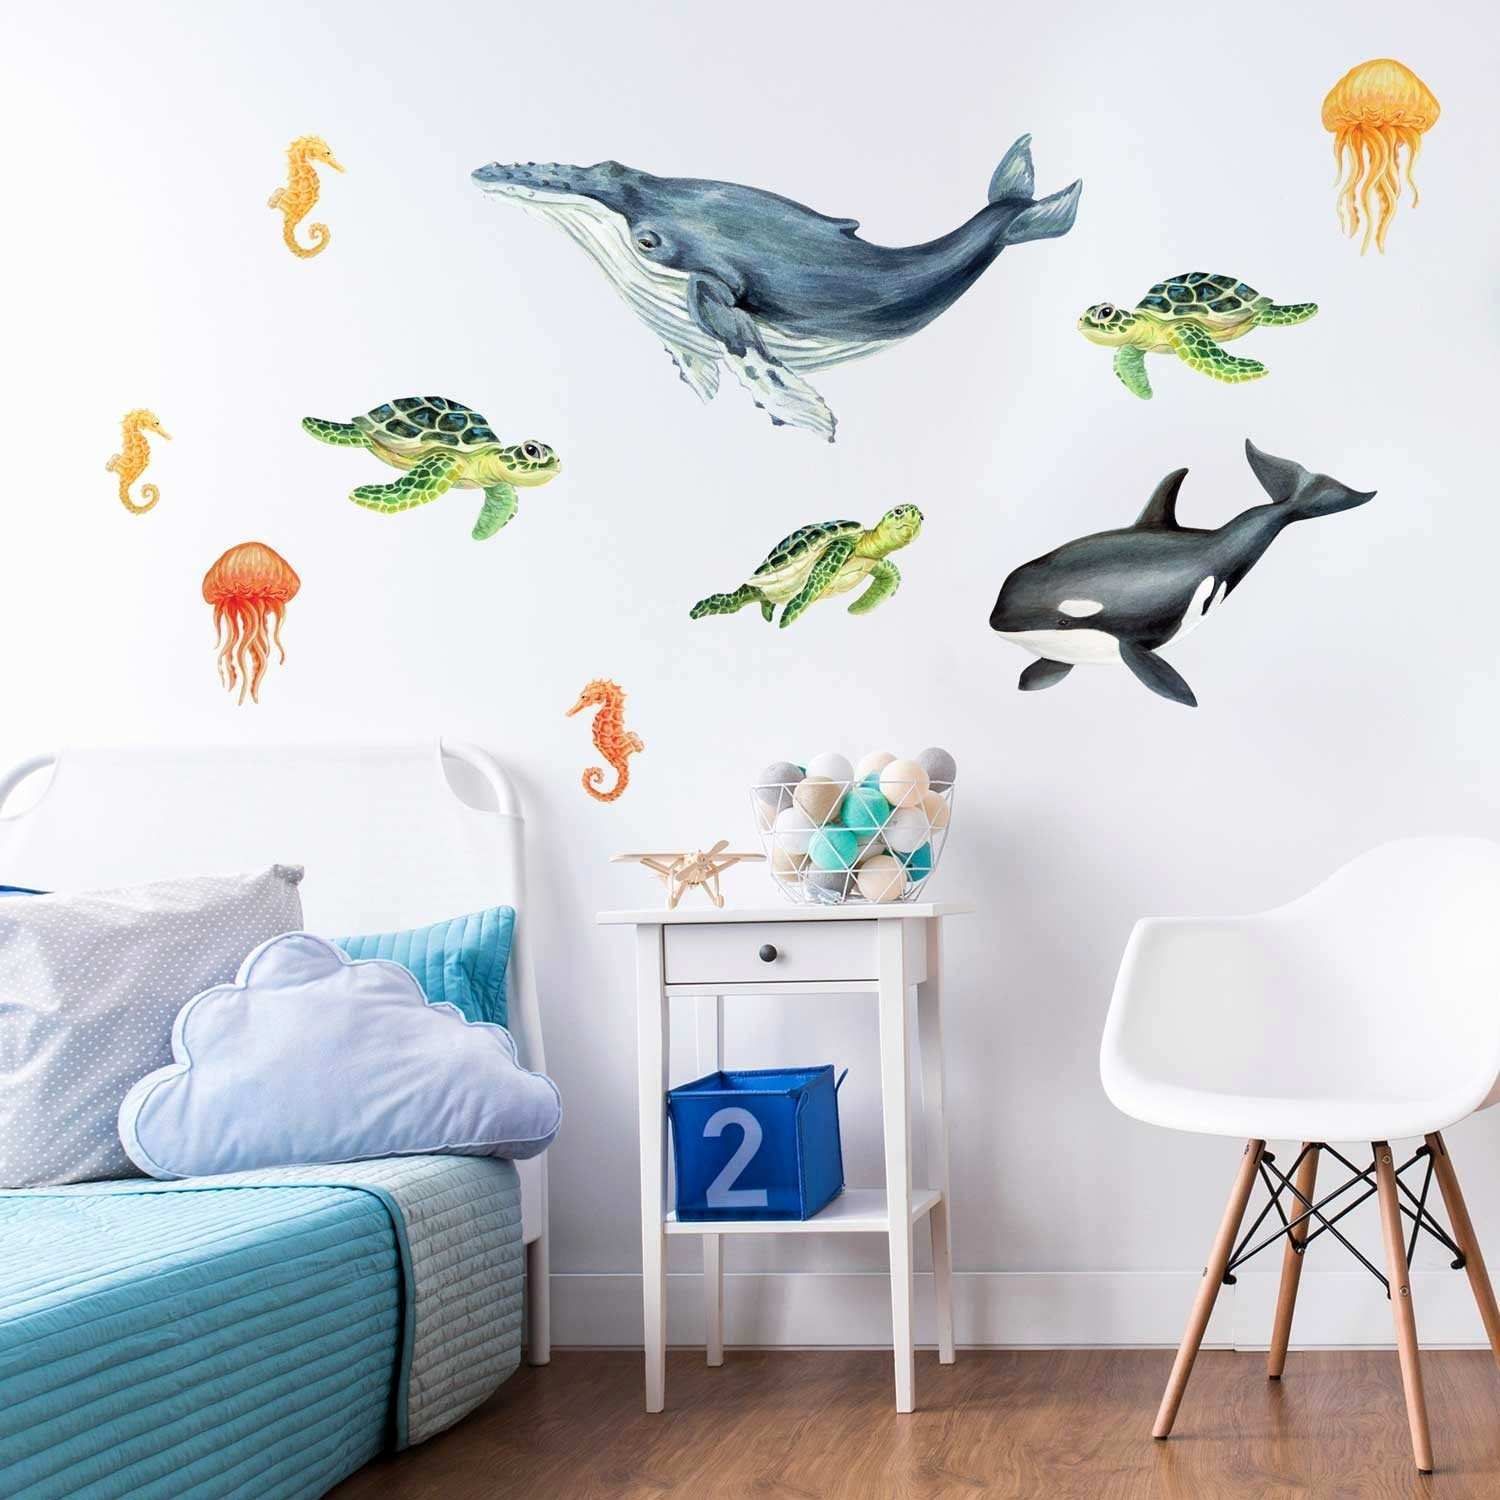 31 Teen Room Decor Ideas for Girls Awesome Pinterest Wall Decor